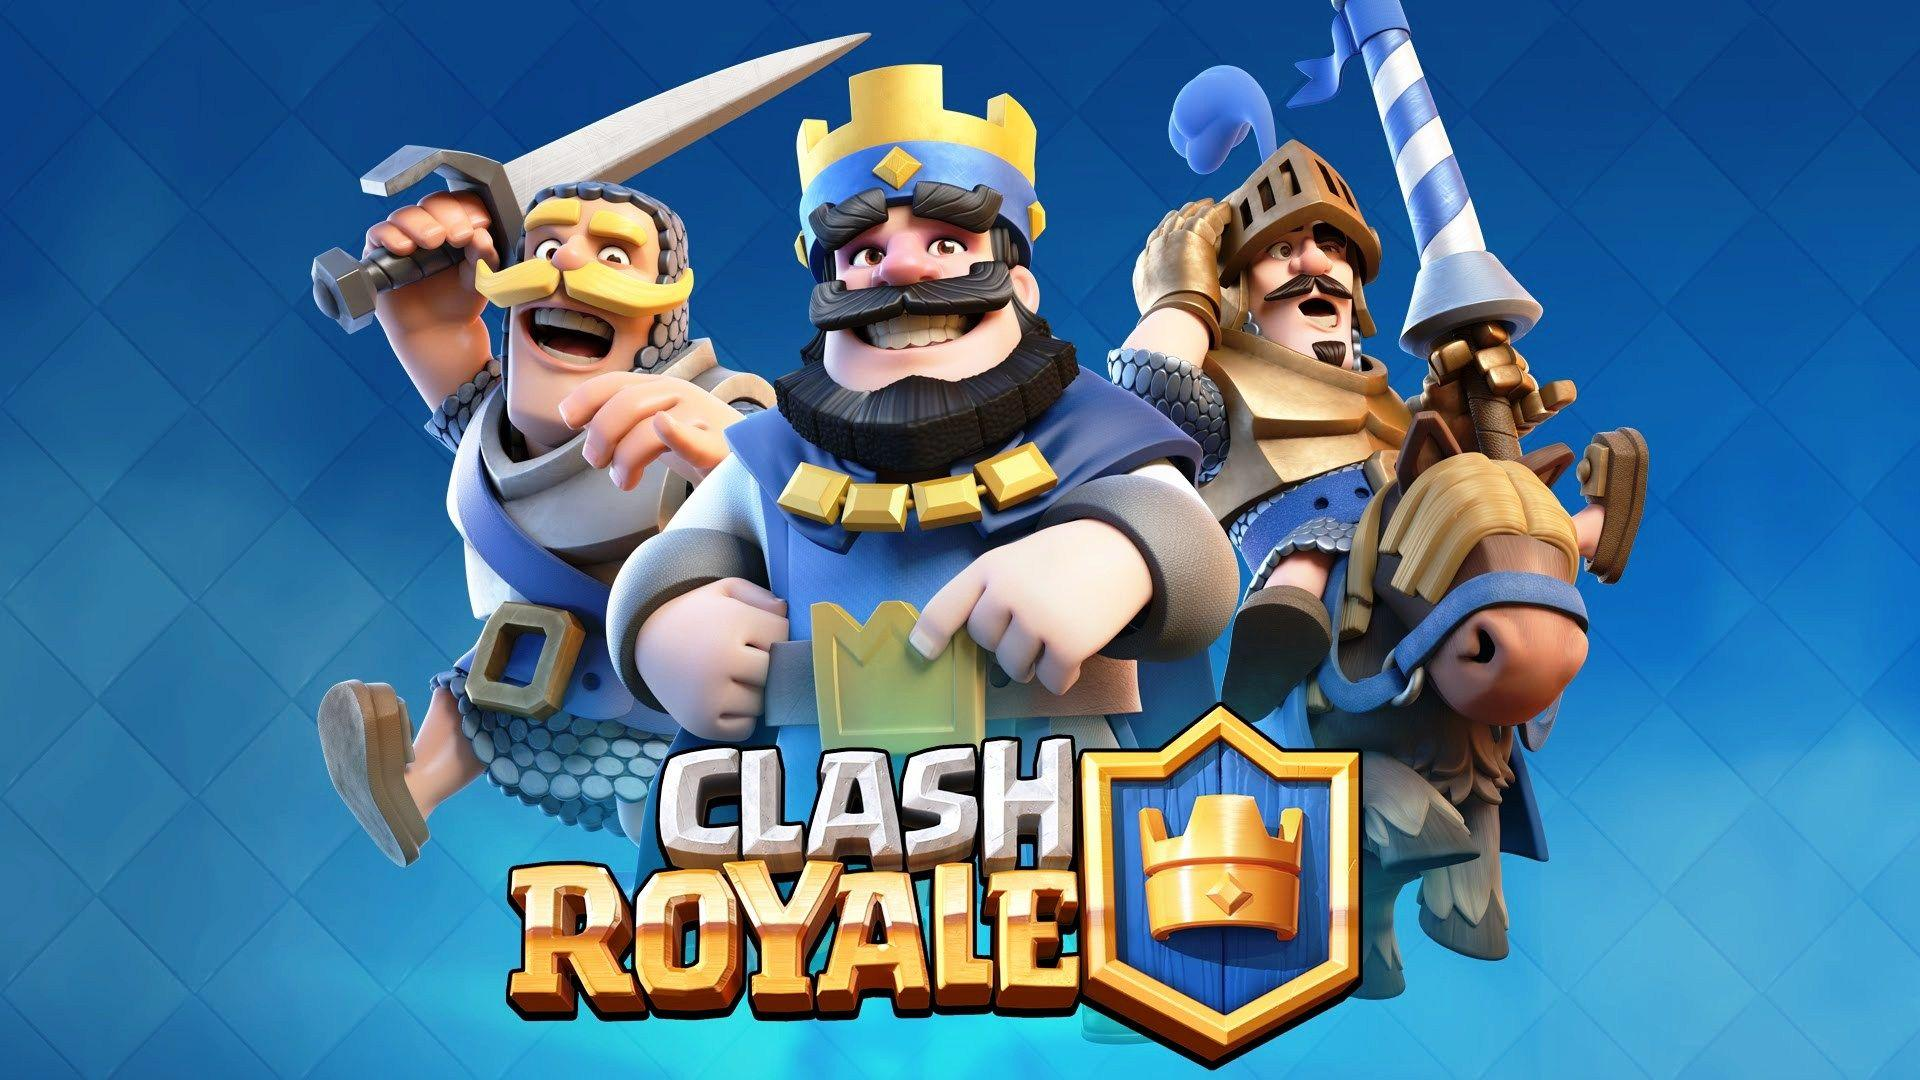 Supercell Clash Royale HD, HD Games, 4k Wallpapers, Image